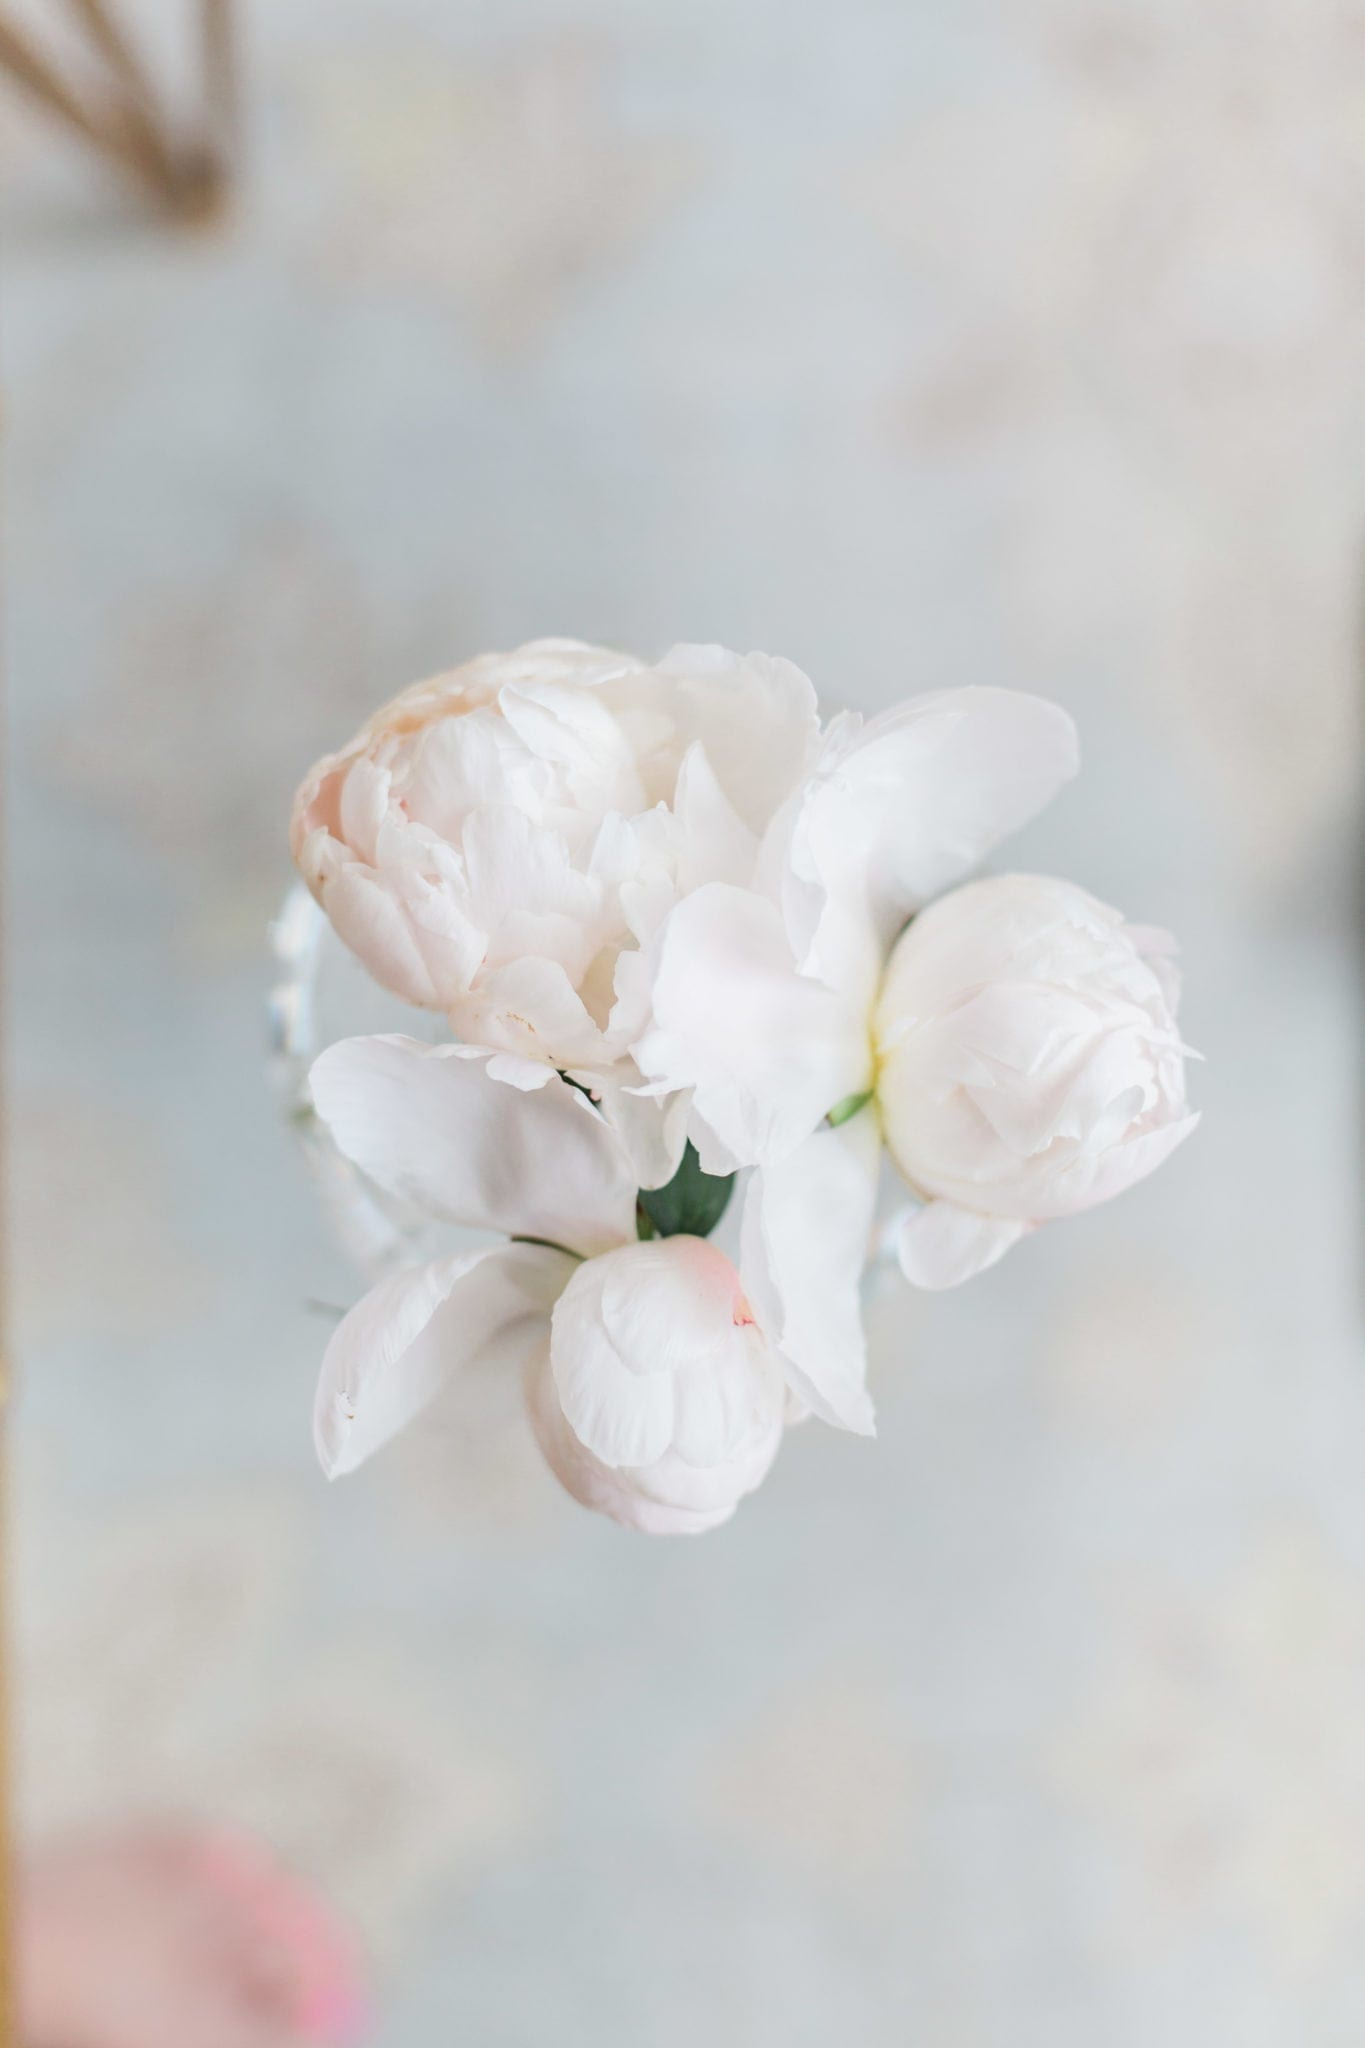 When to cut peony blooms and tricks for growing peonies.